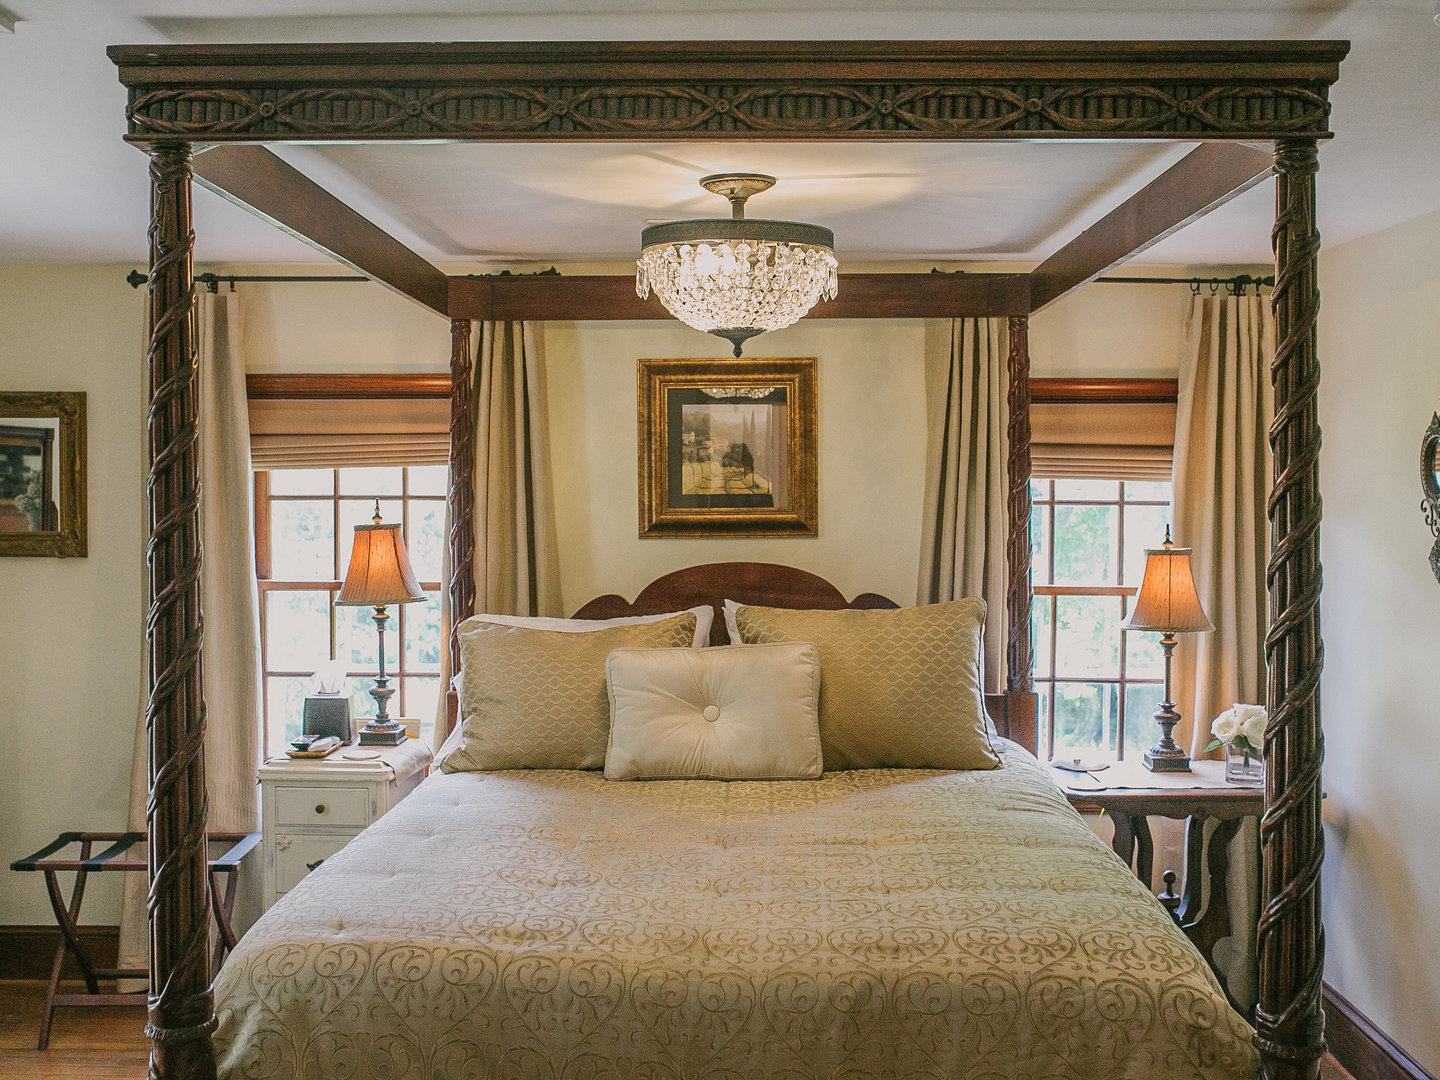 A bedroom with a large bed in a room at Airwell Bed and Breakfast.